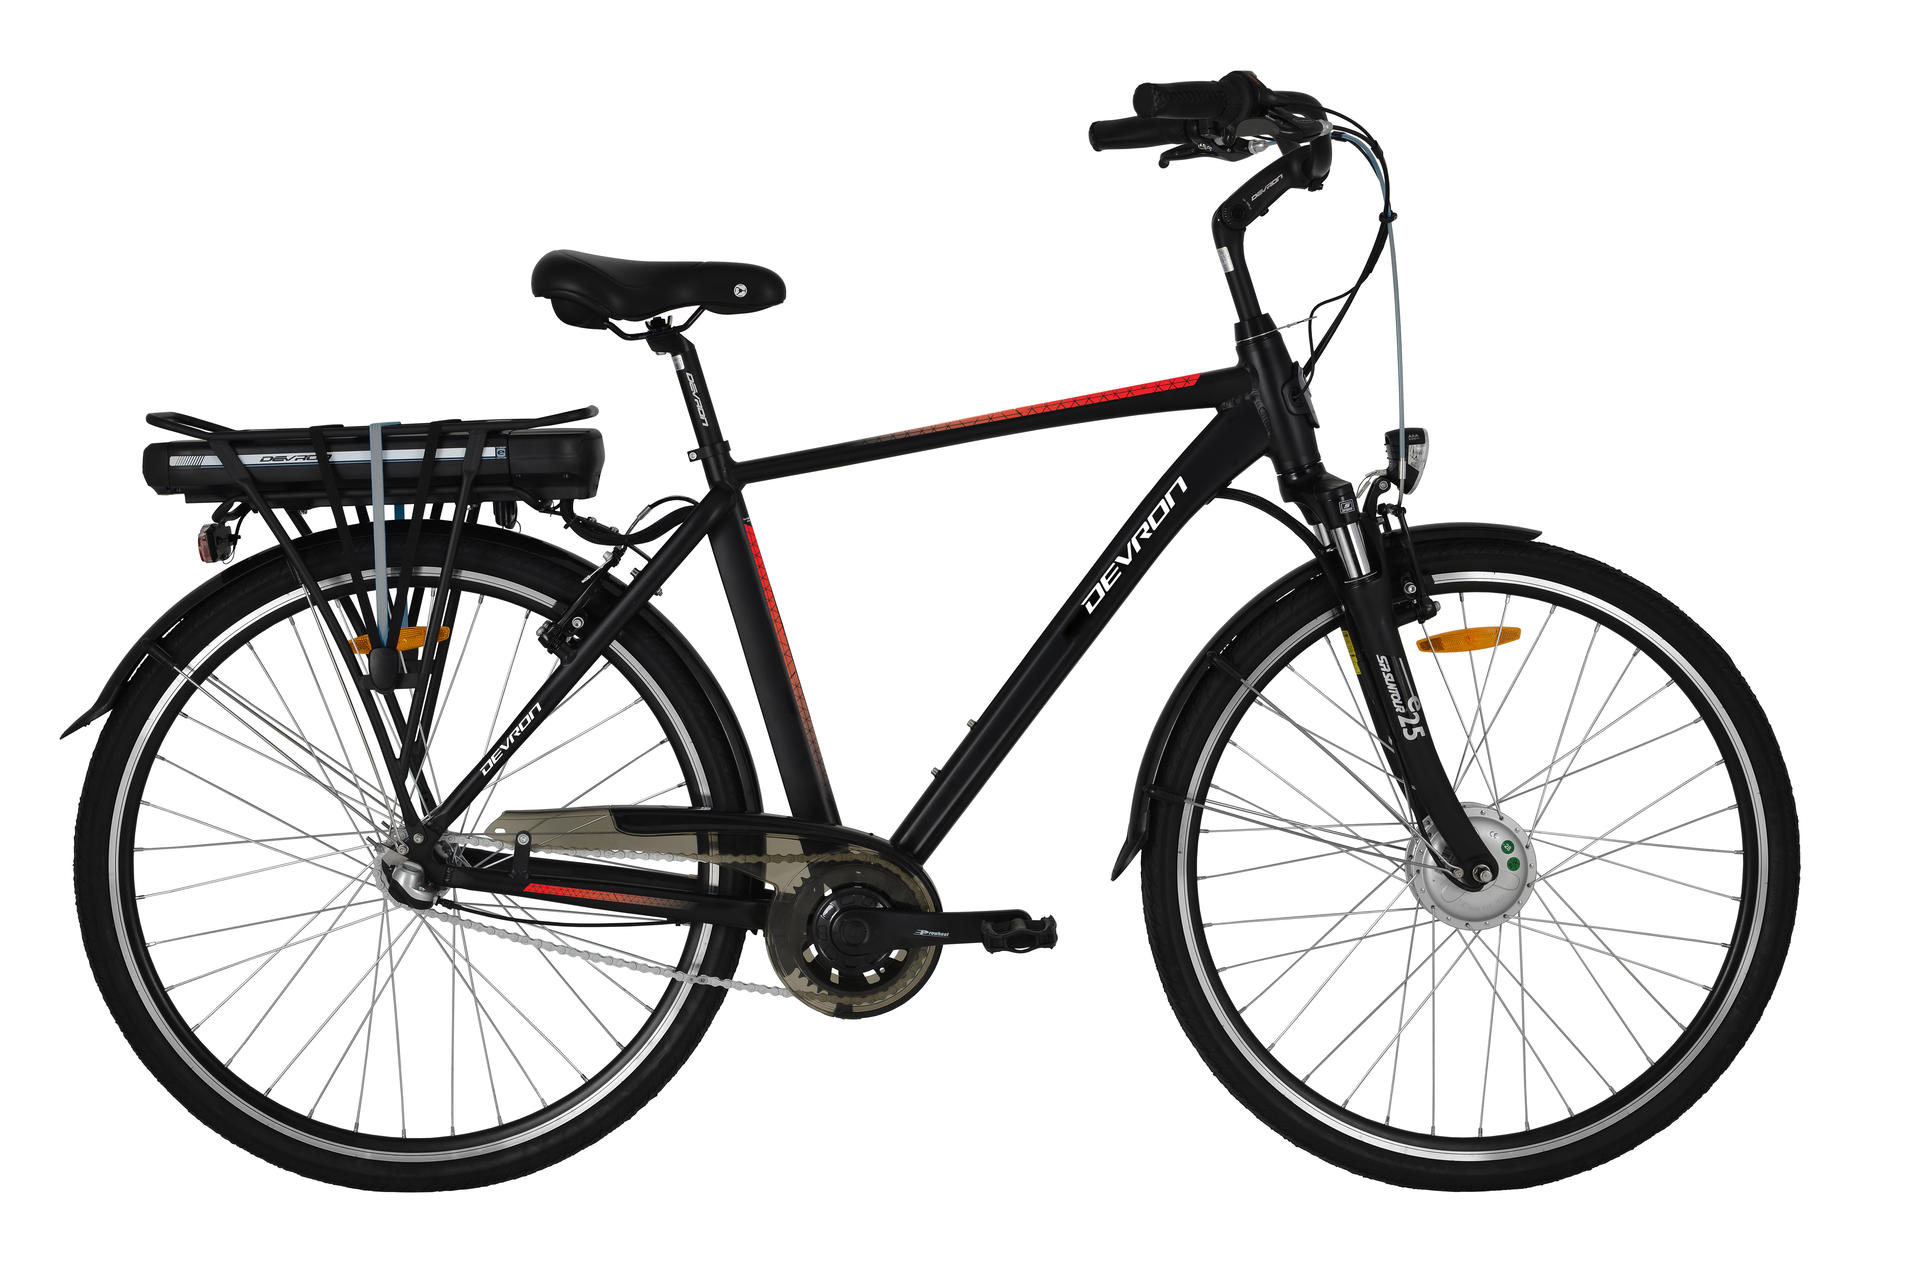 Bicicletta elettrica city bike Devron 28121 490mm Black Matt